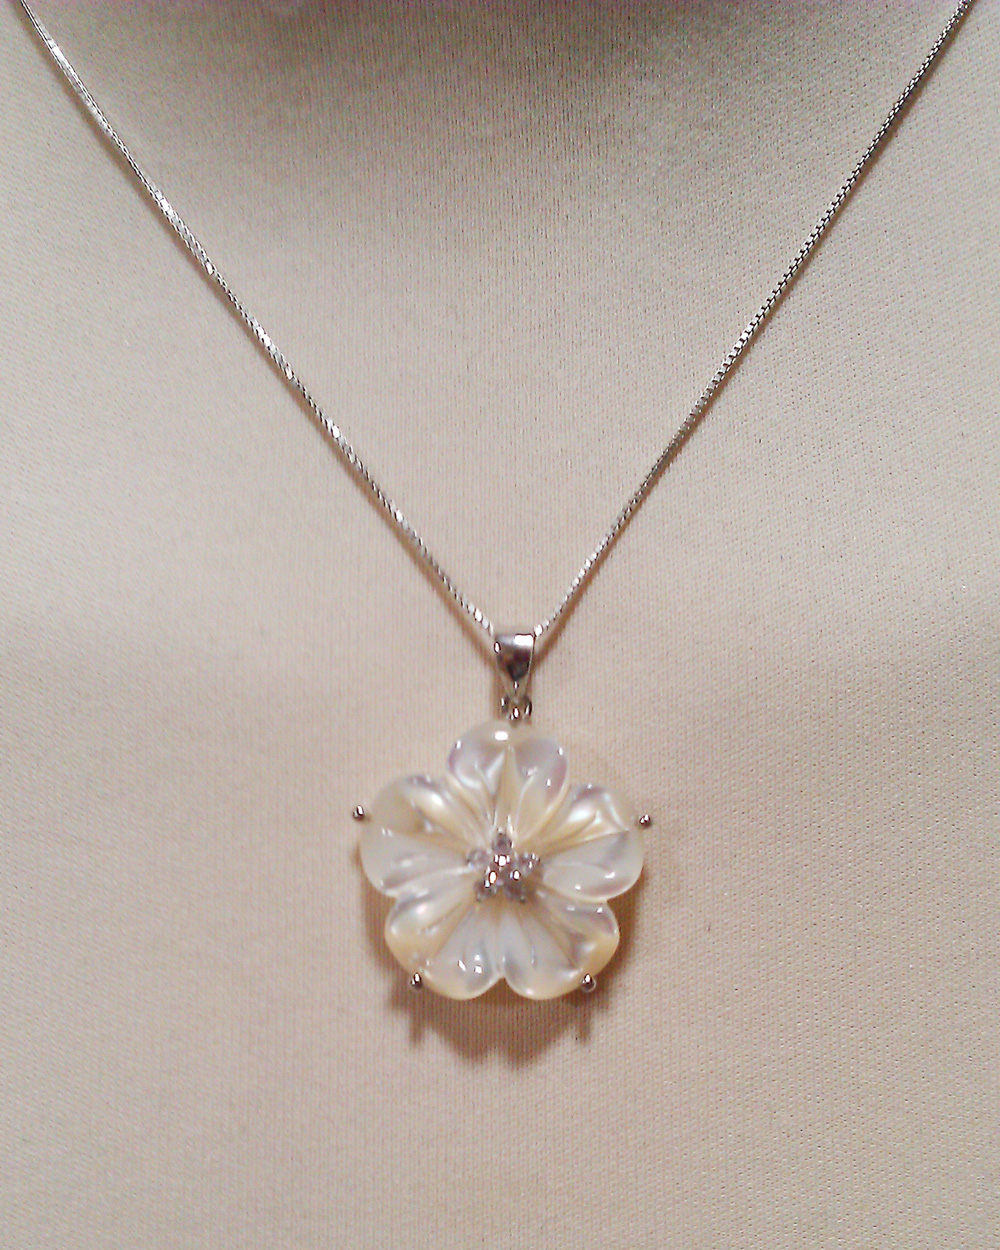 mother of pearl jewelry - photo#2 pkbjcvi